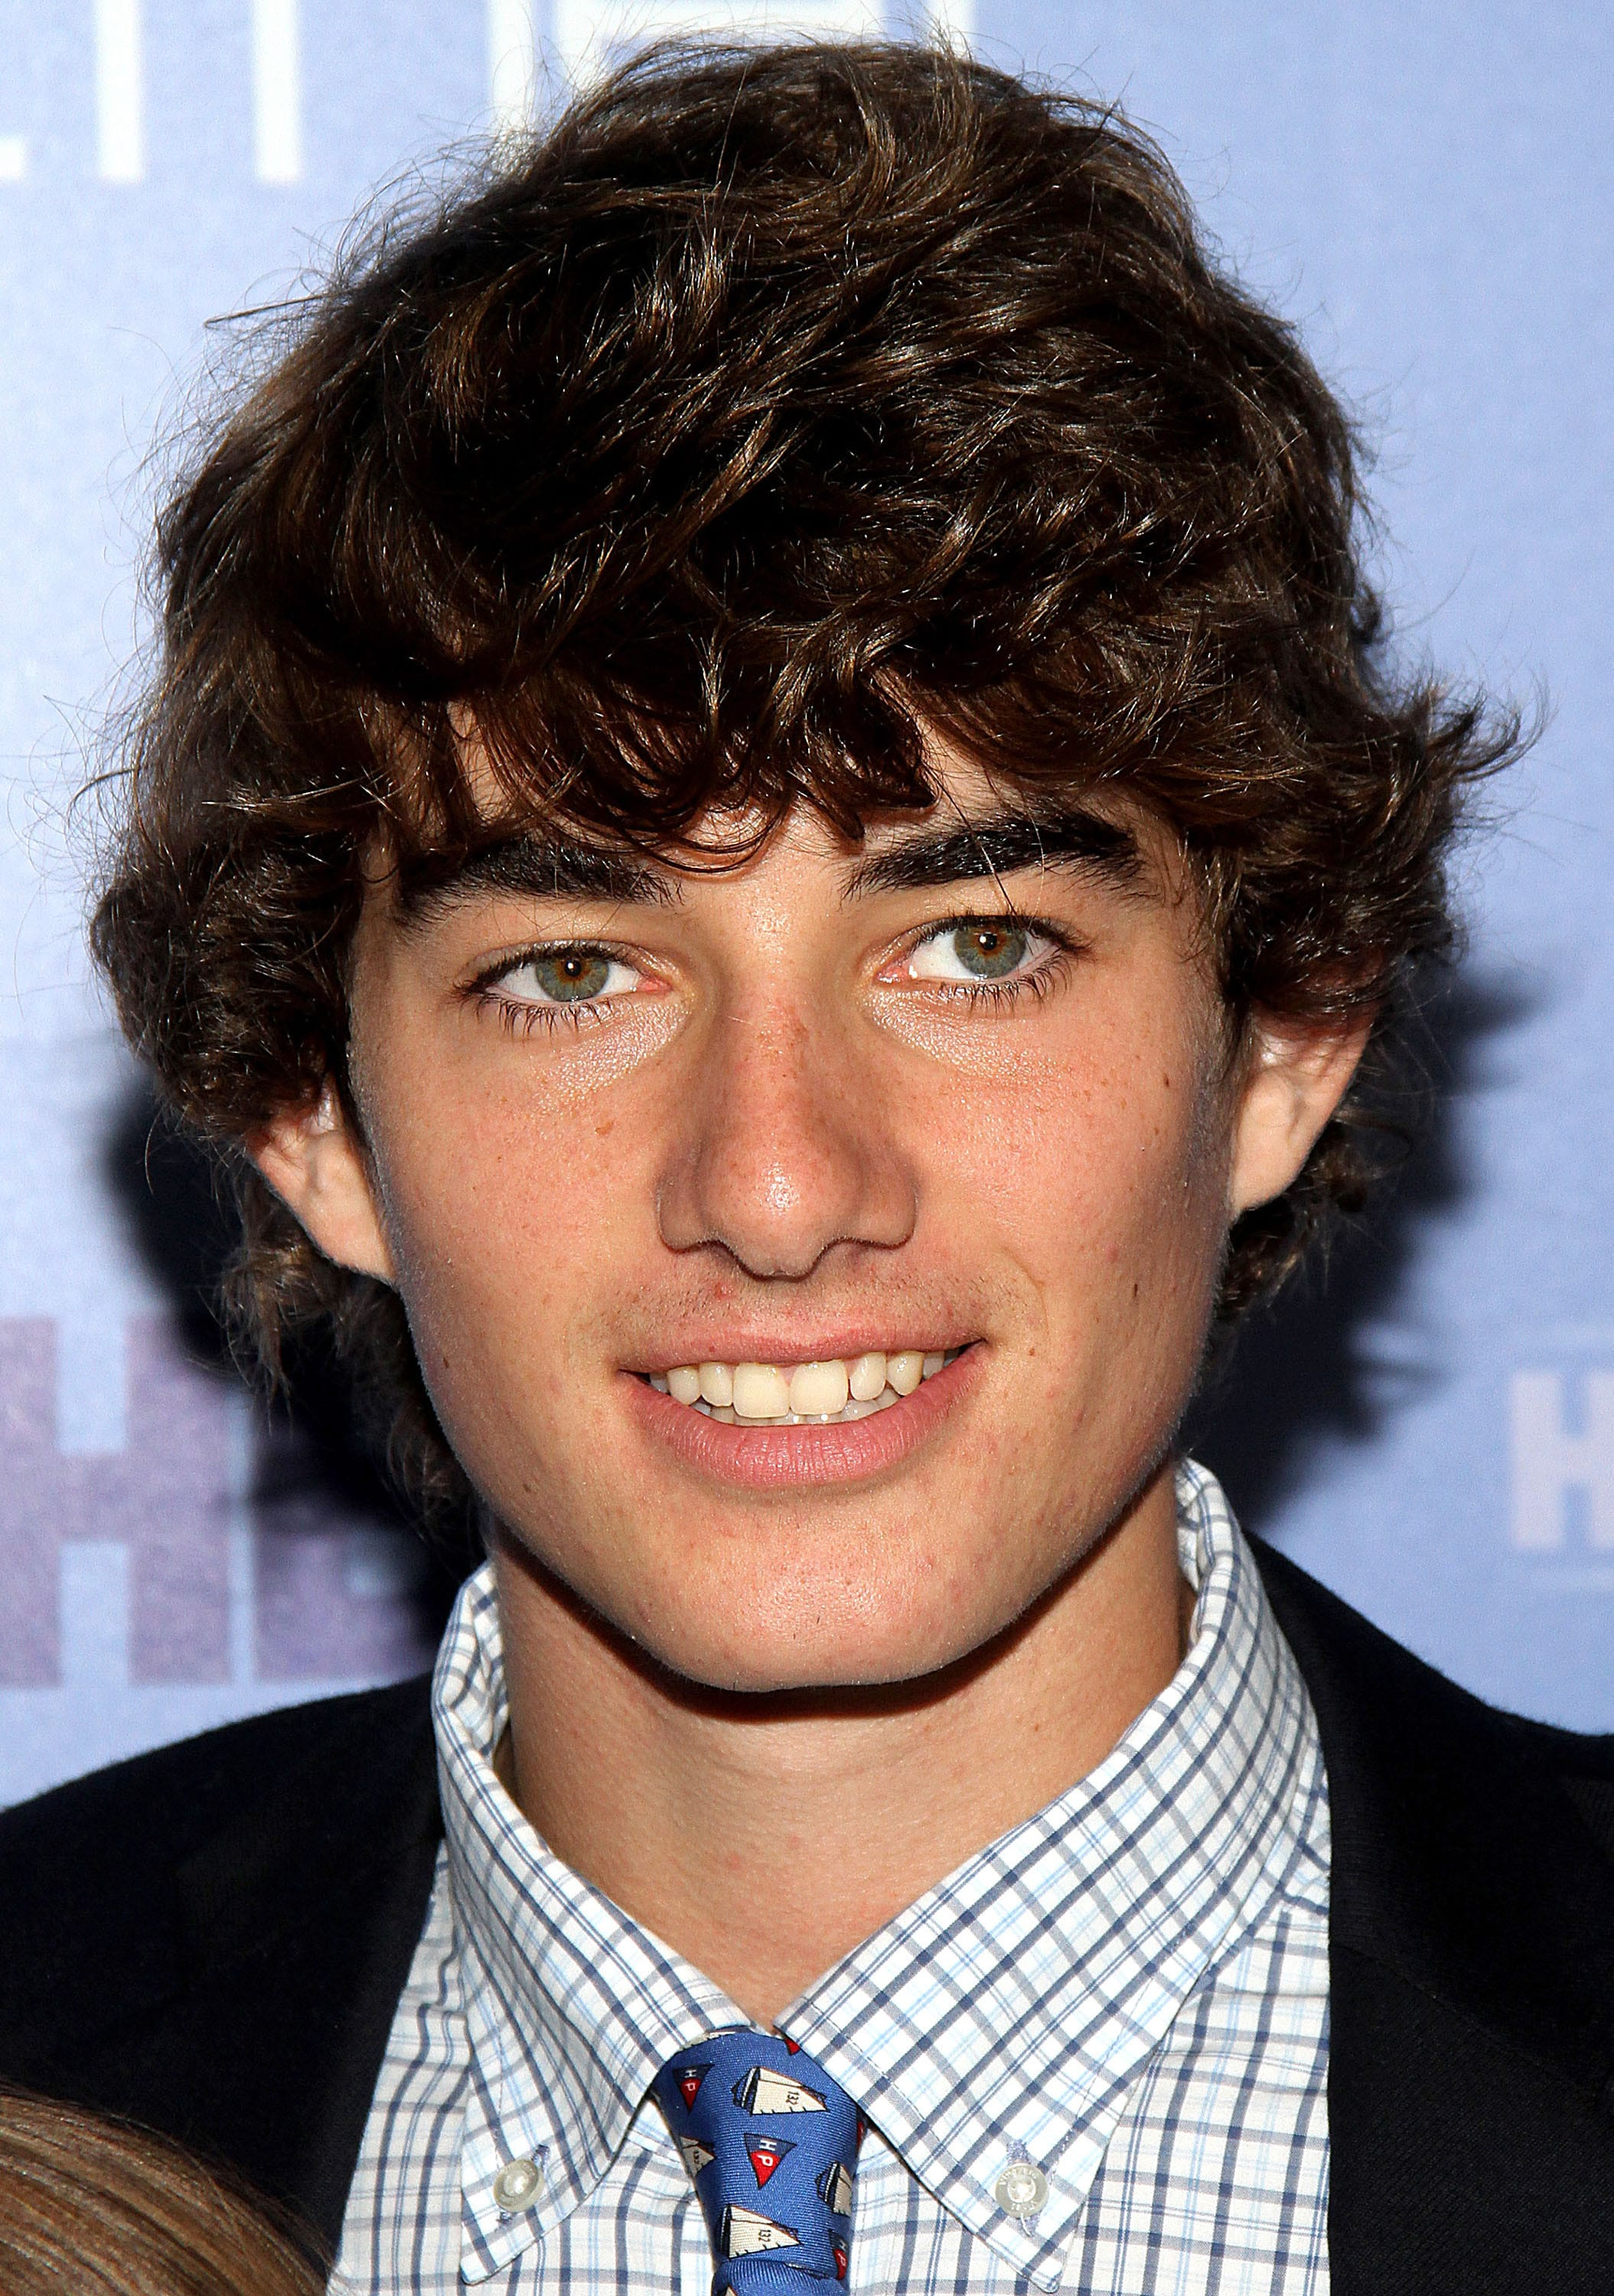 how long did taylor swift dating conor kennedy